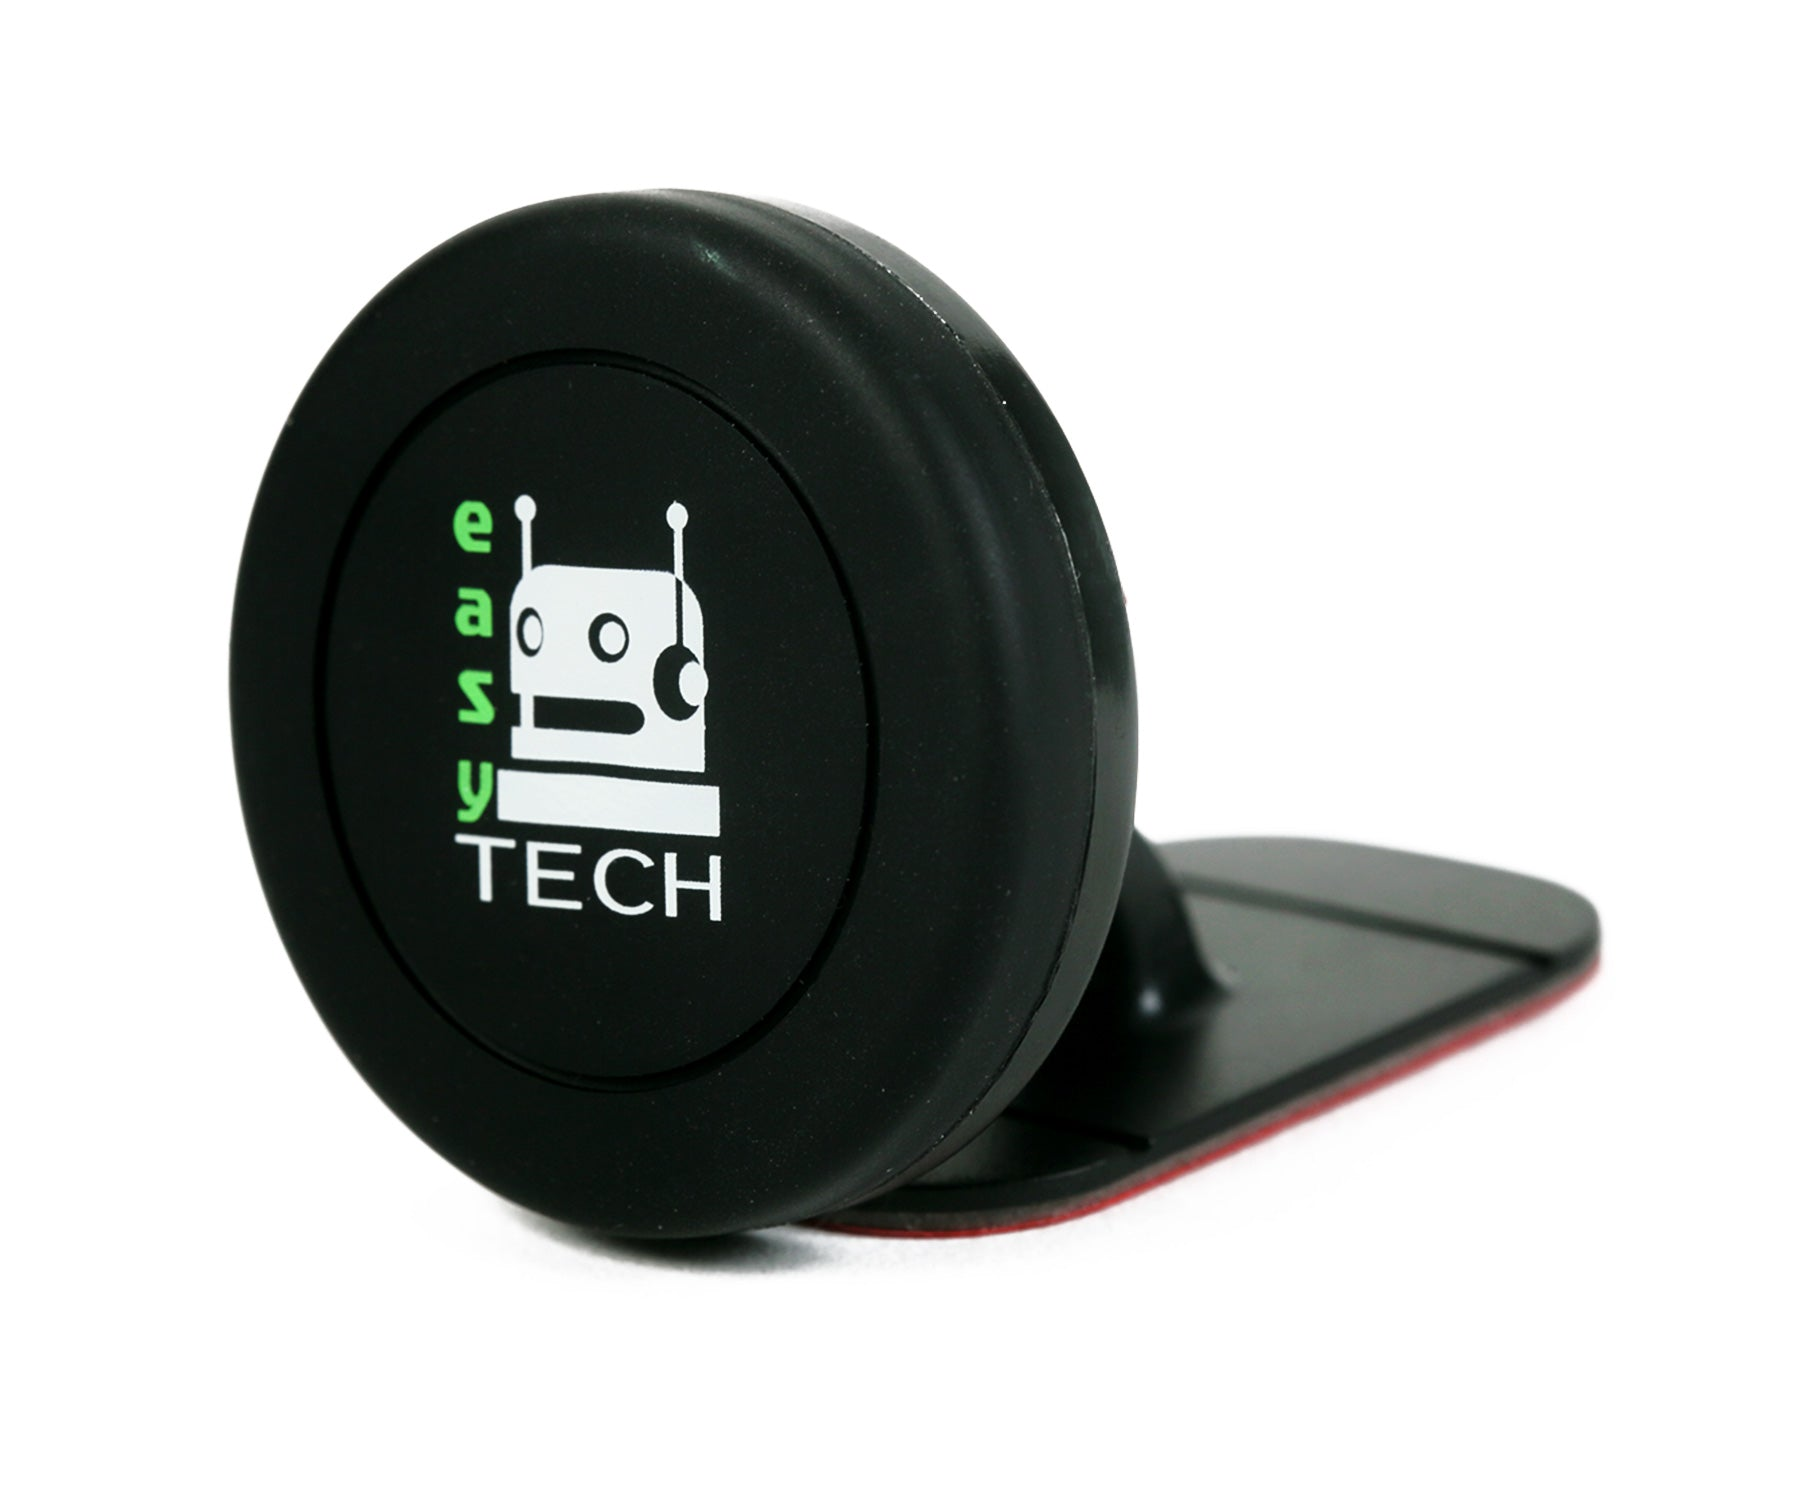 2-in-1 Magnetic Car Mount - Dashboard/Air Vent